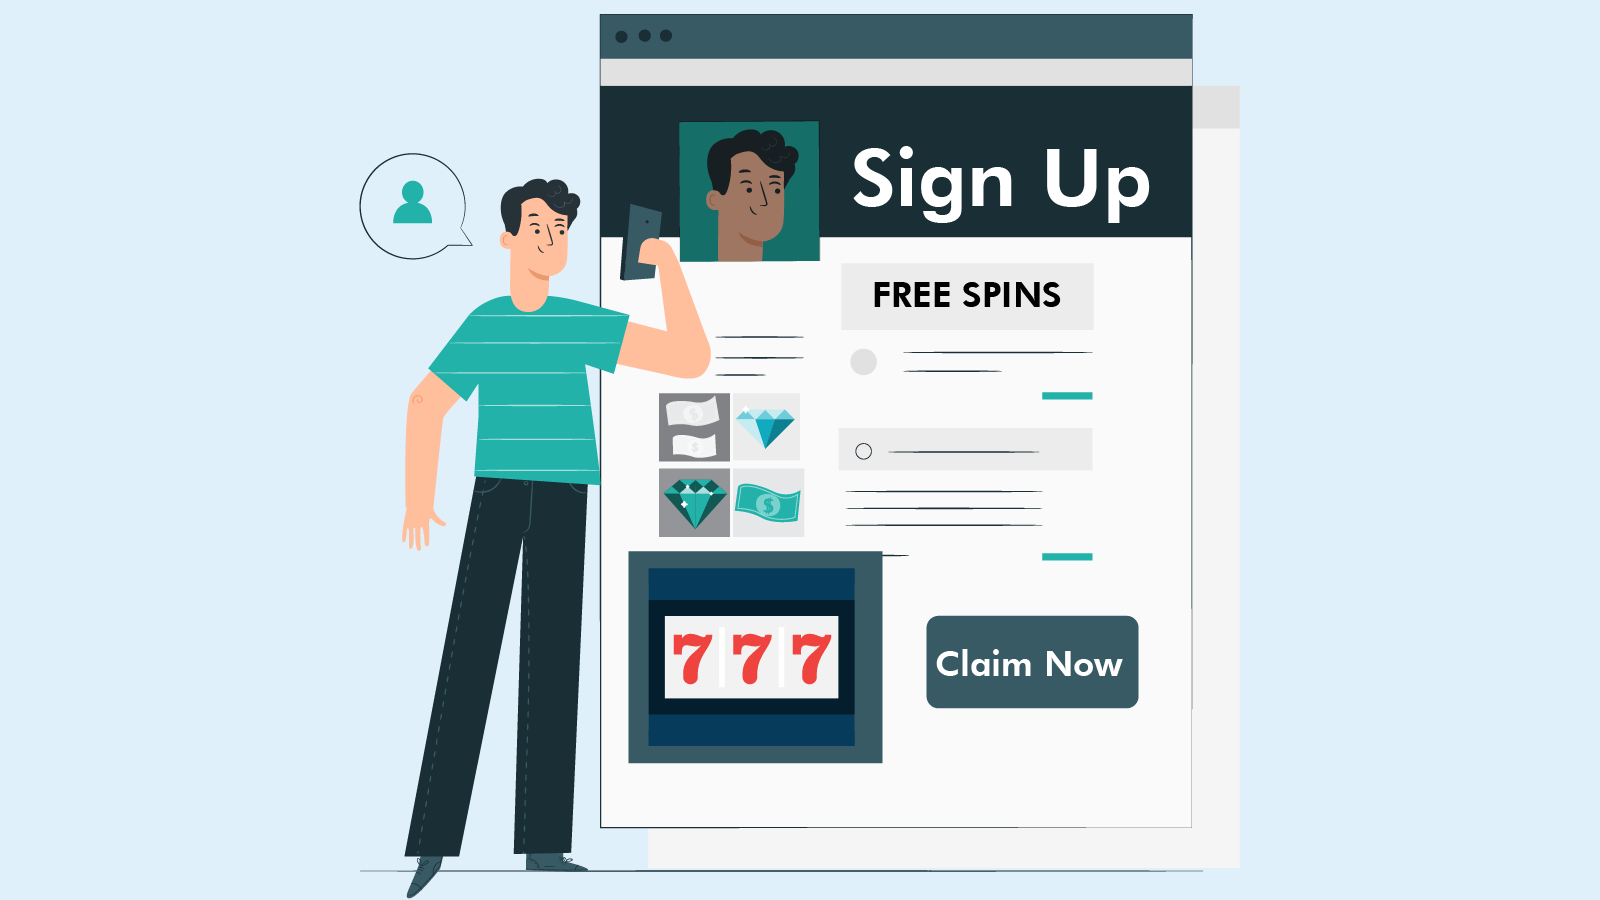 How to claim free spins on sign up